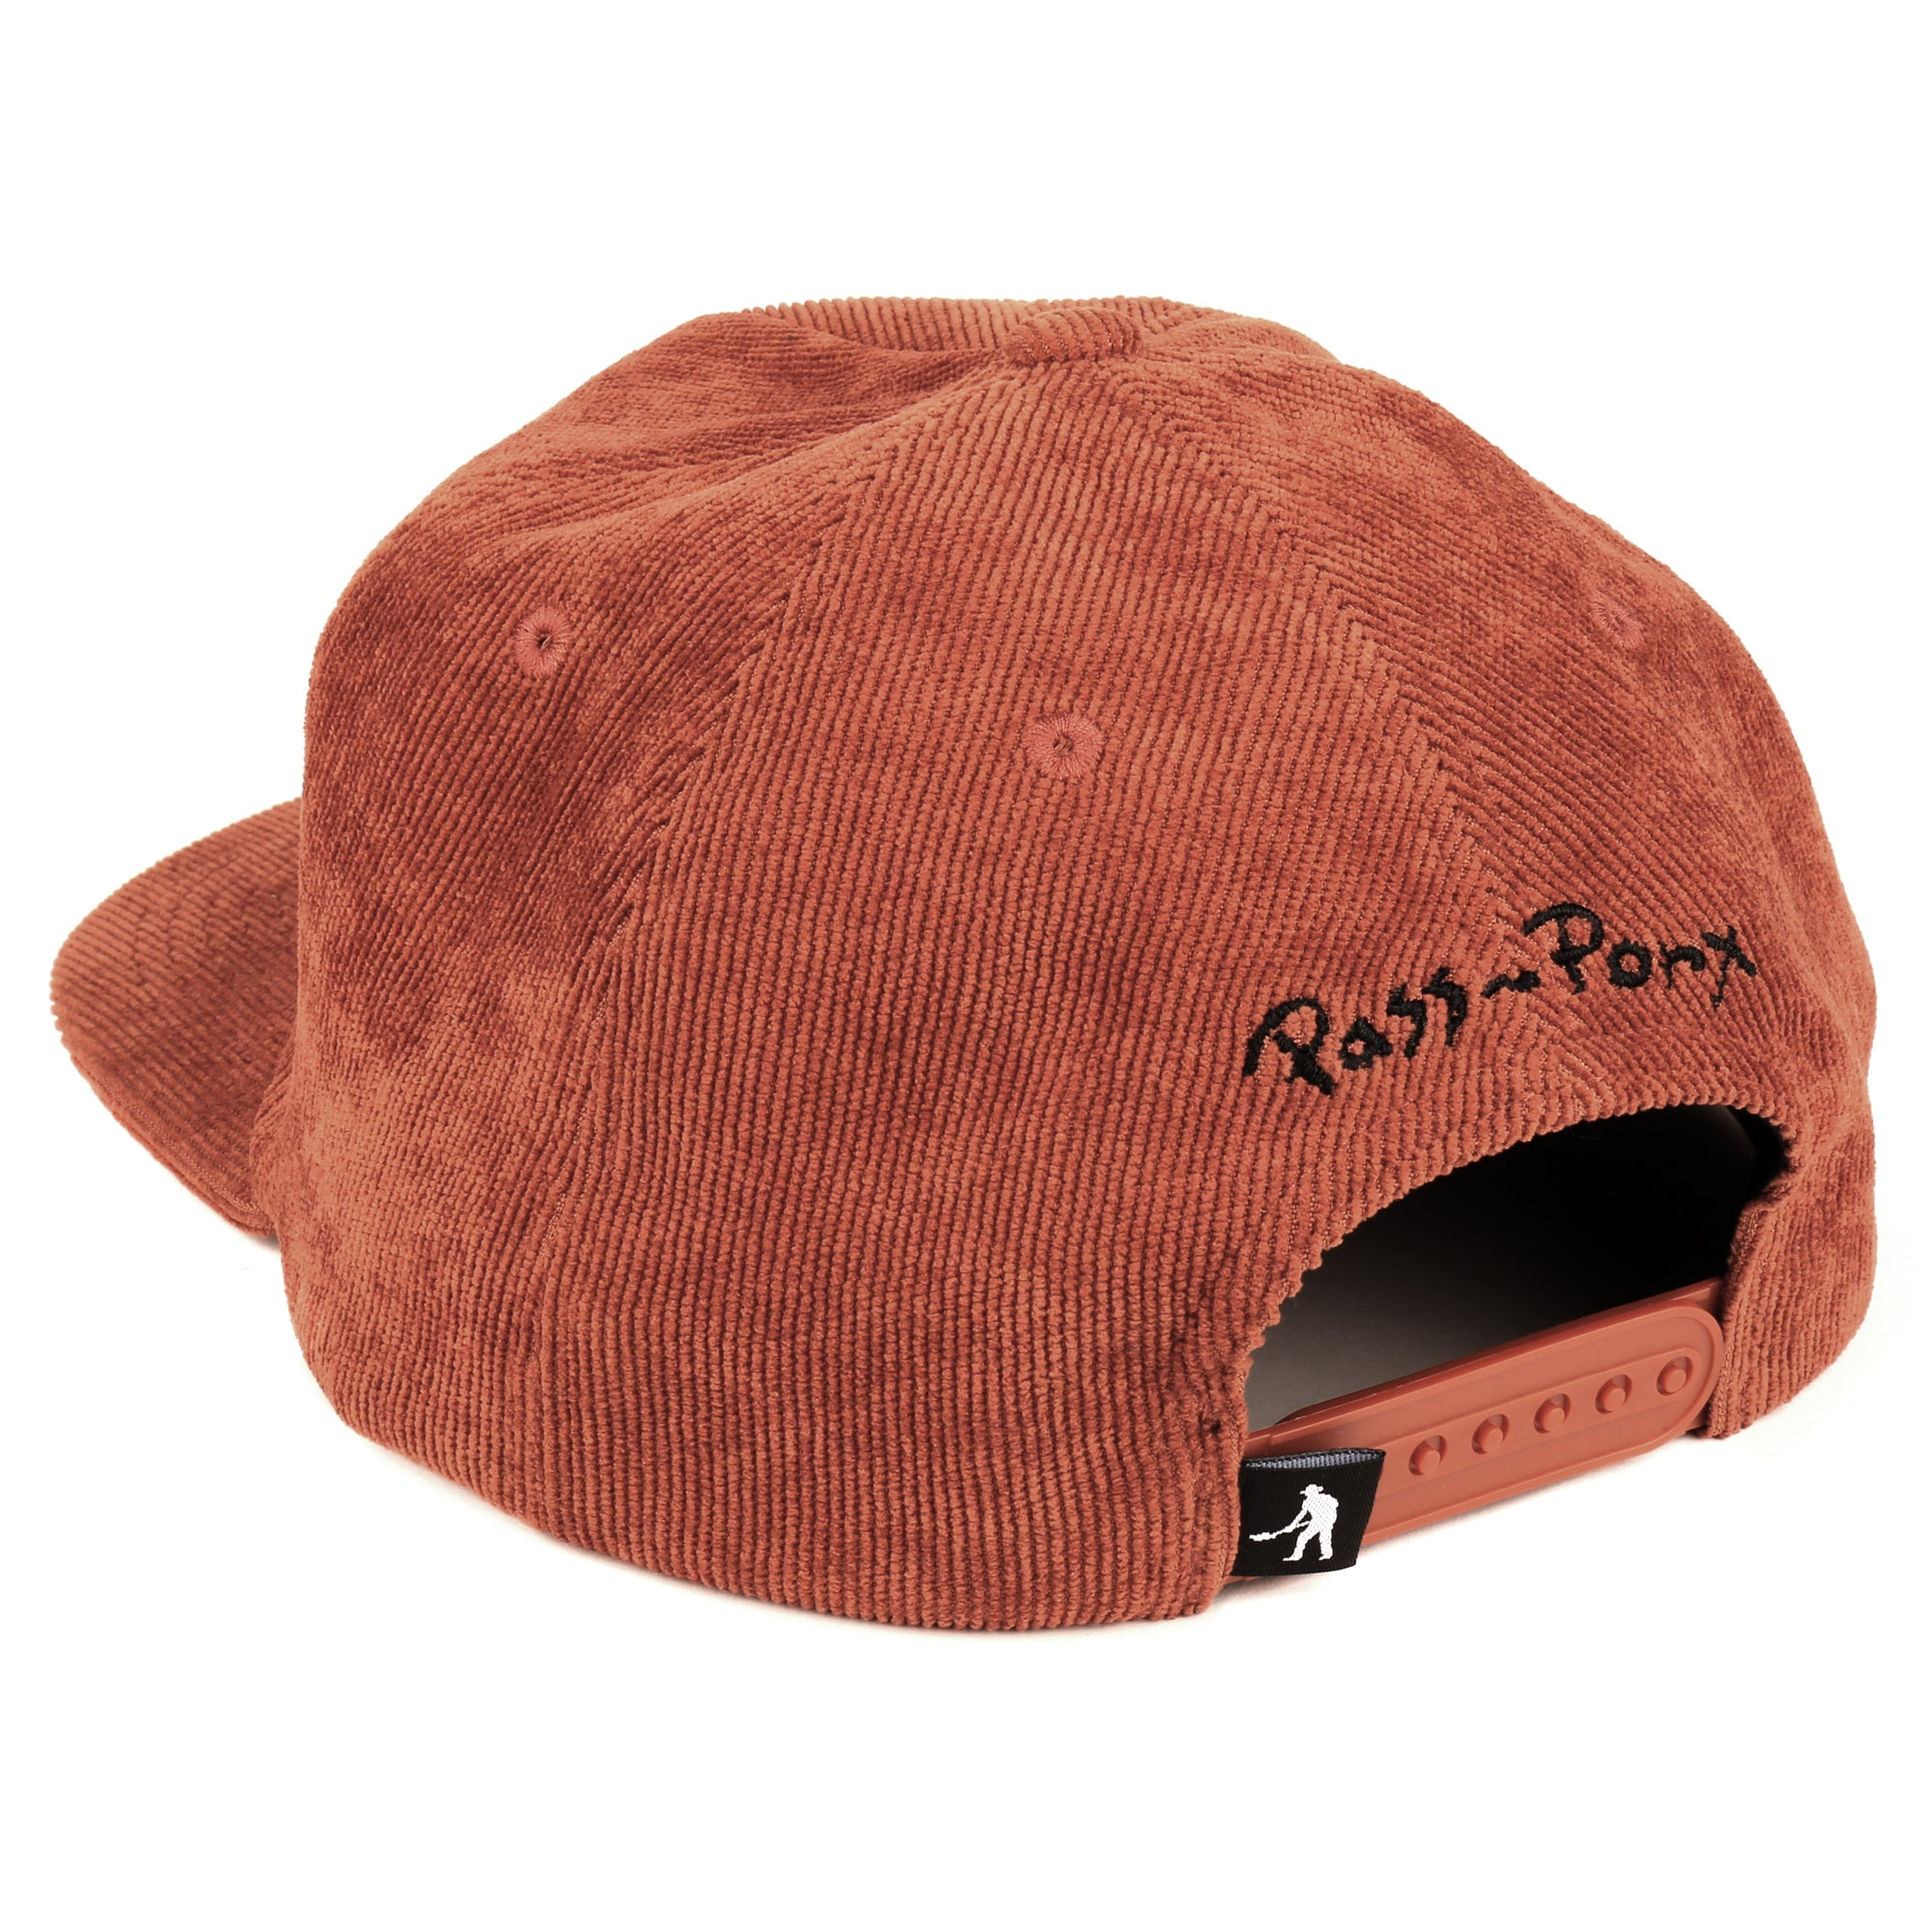 Passport Toby Zoates Copper 5 Panel Cap Product Photo #2